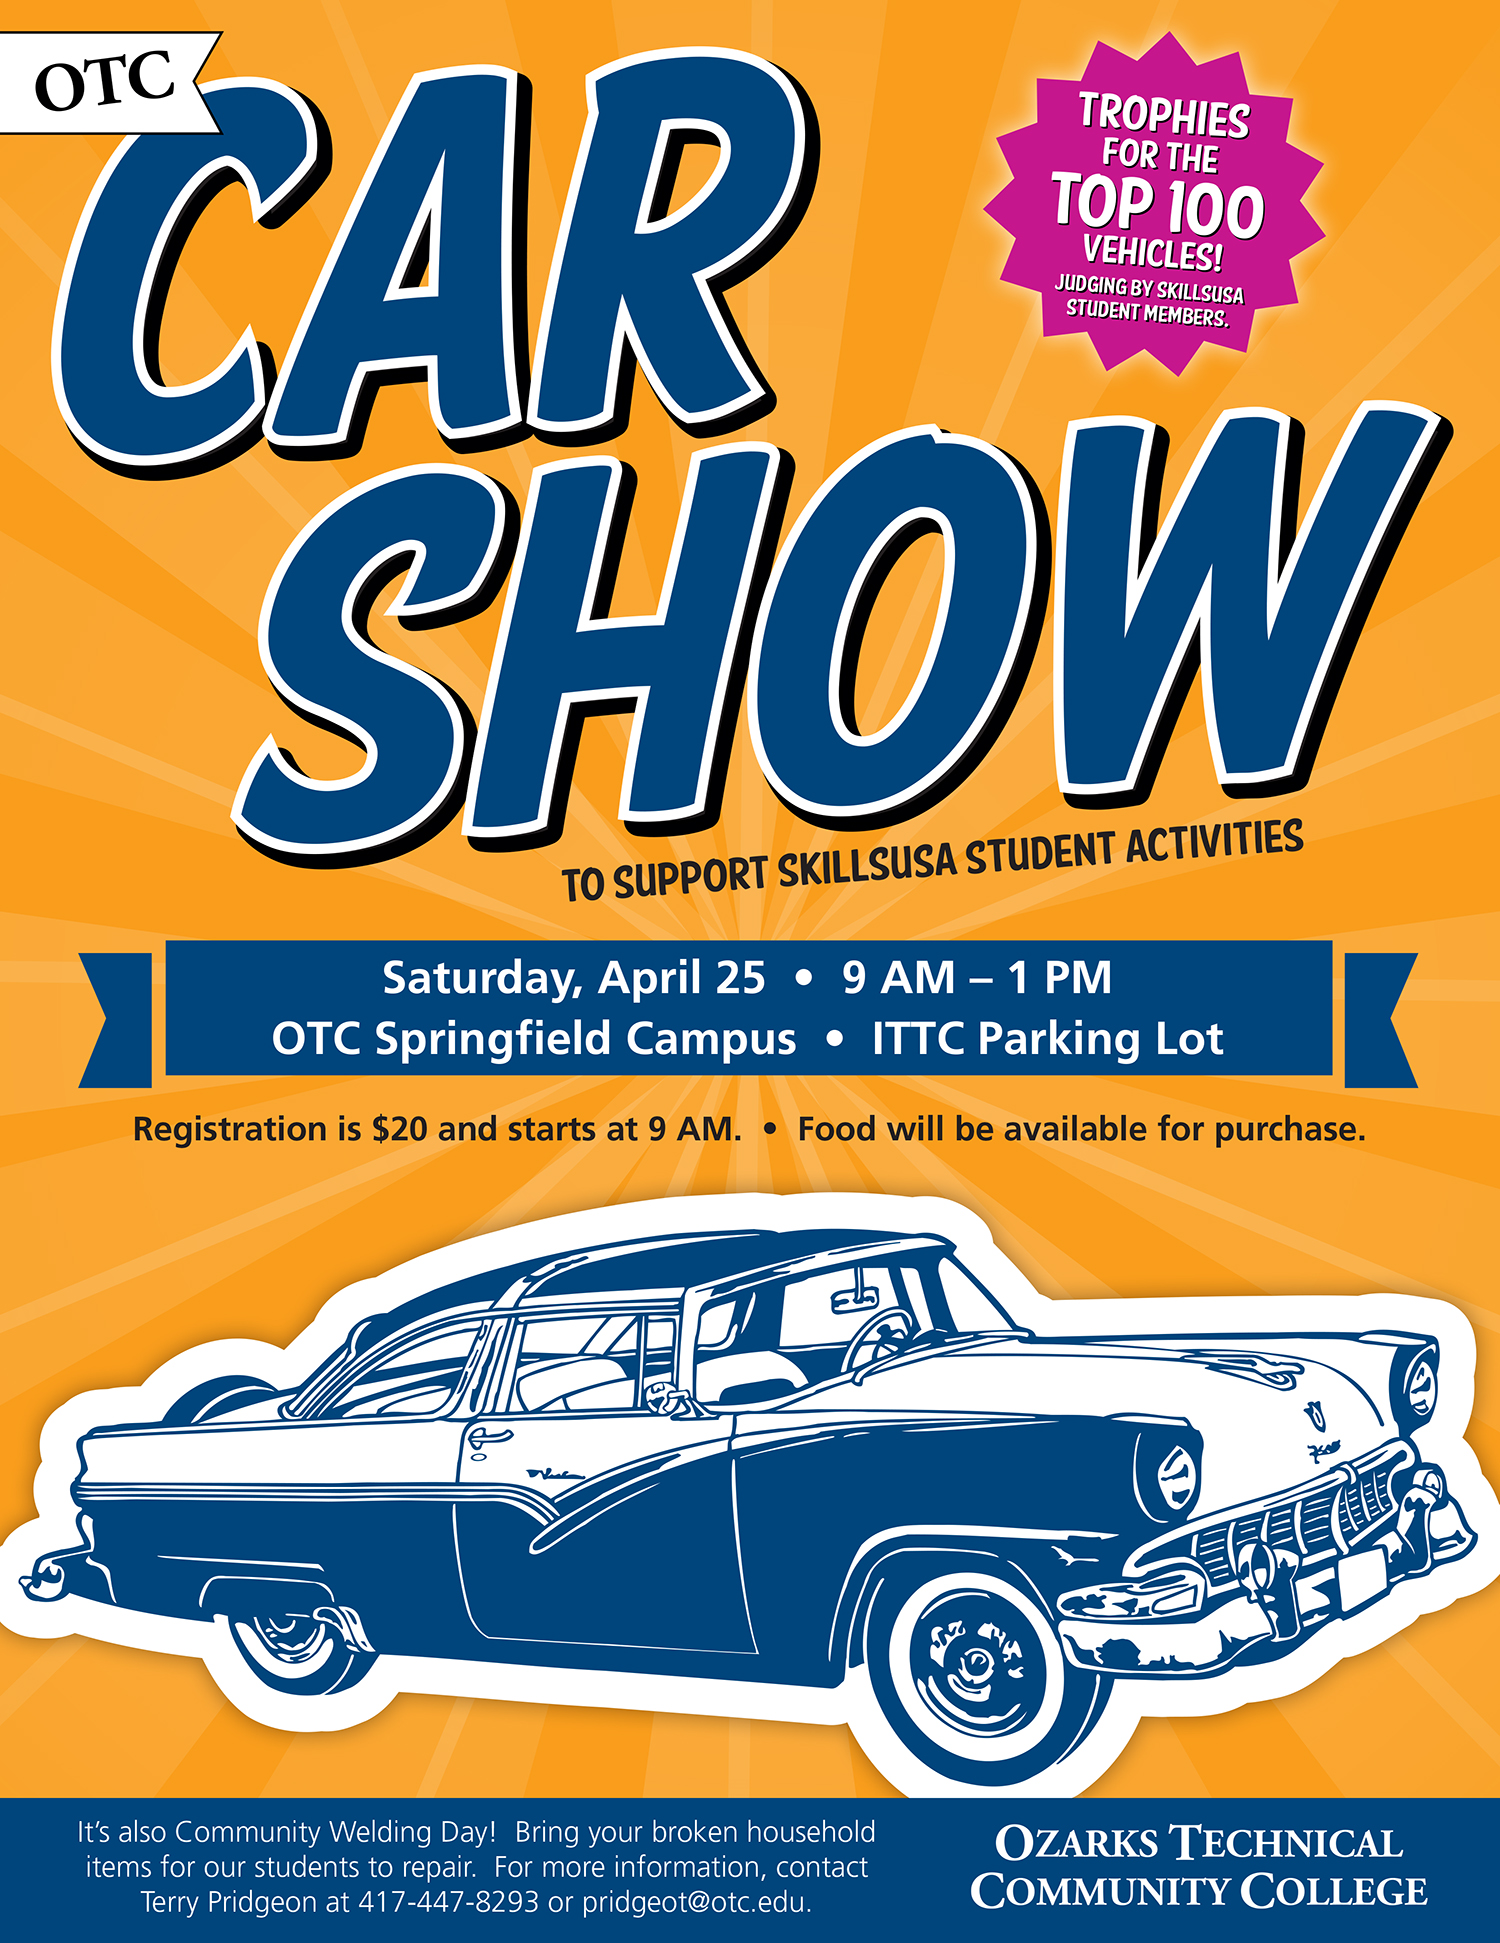 OTC invites community to plant sale car show and welding event – Car Sale Flyer